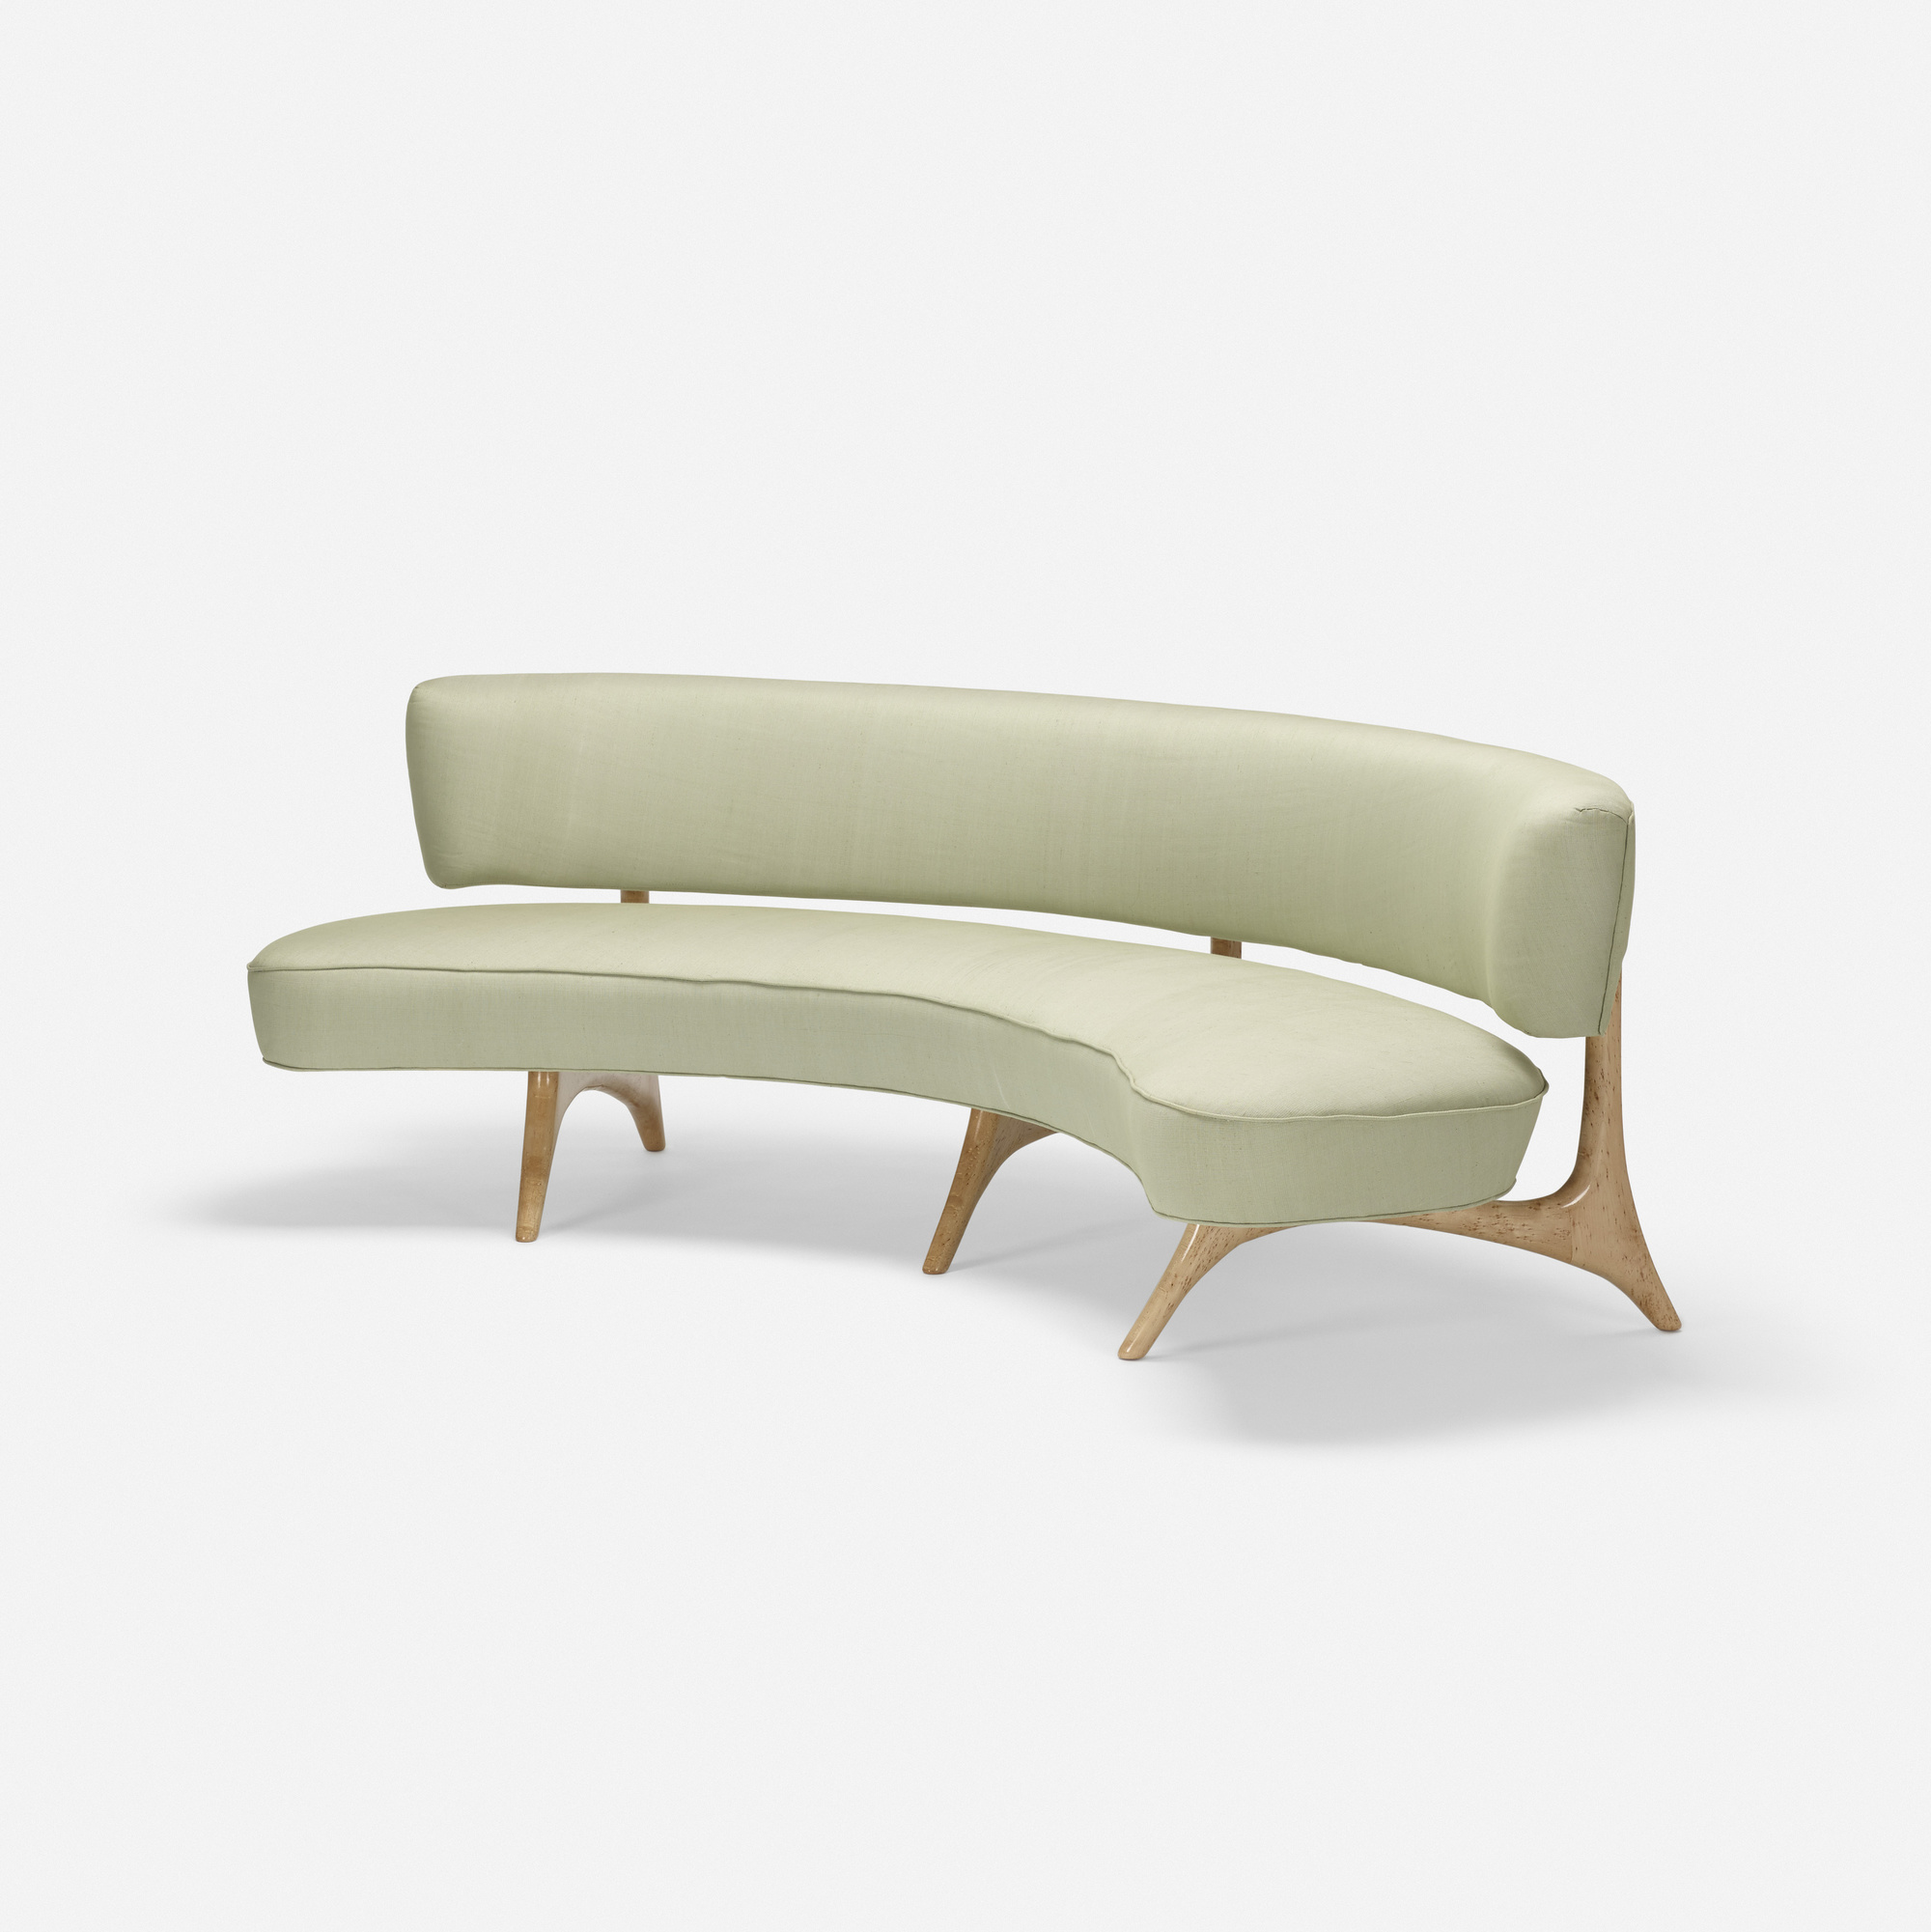 356: Vladimir Kagan / Floating Seat and Back sofa (1 of 3)